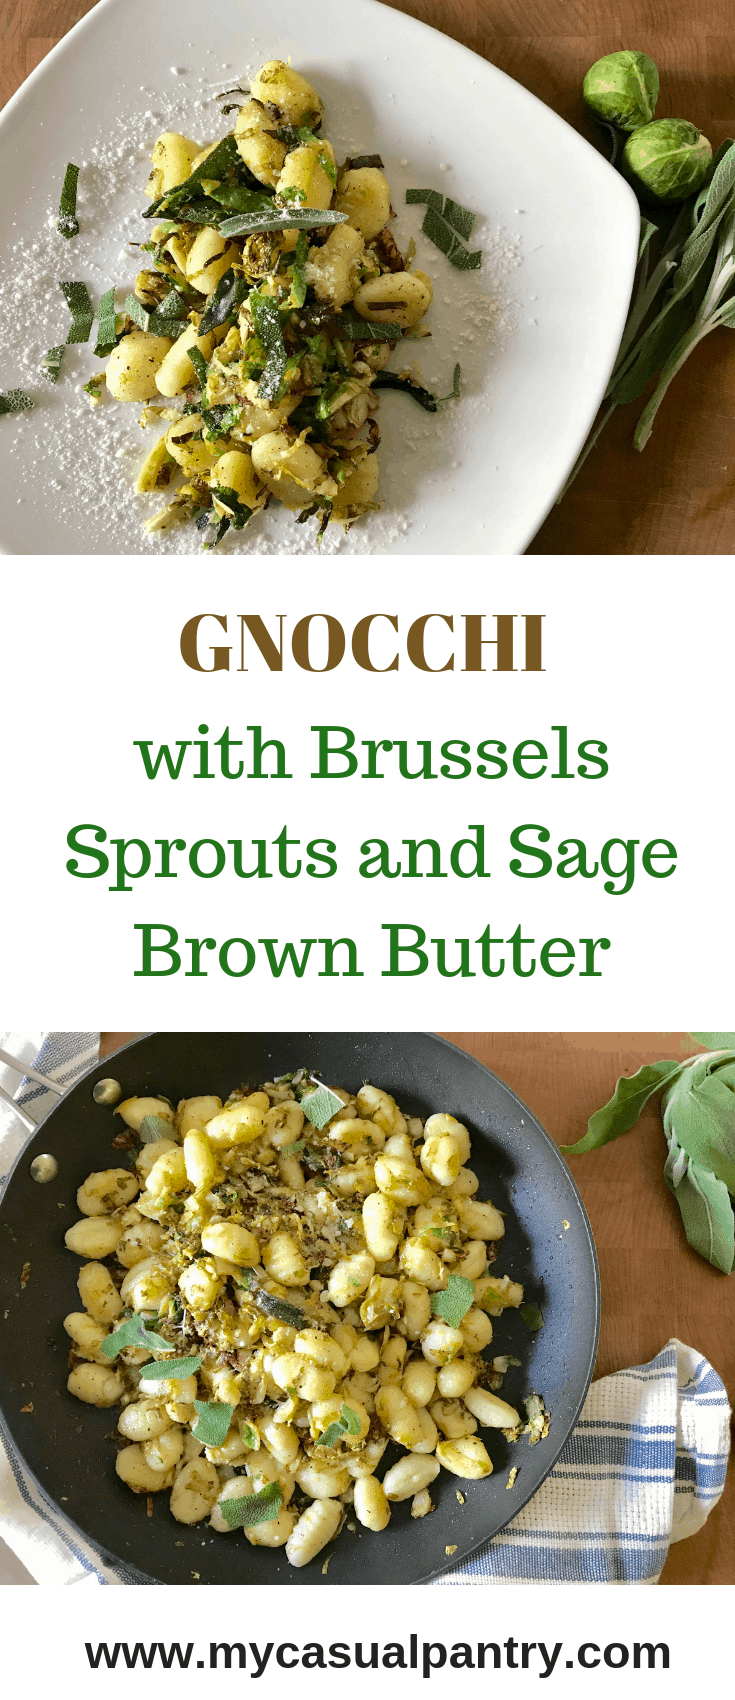 Gnocchi with Brussels Sprouts and Sage Brown Butter